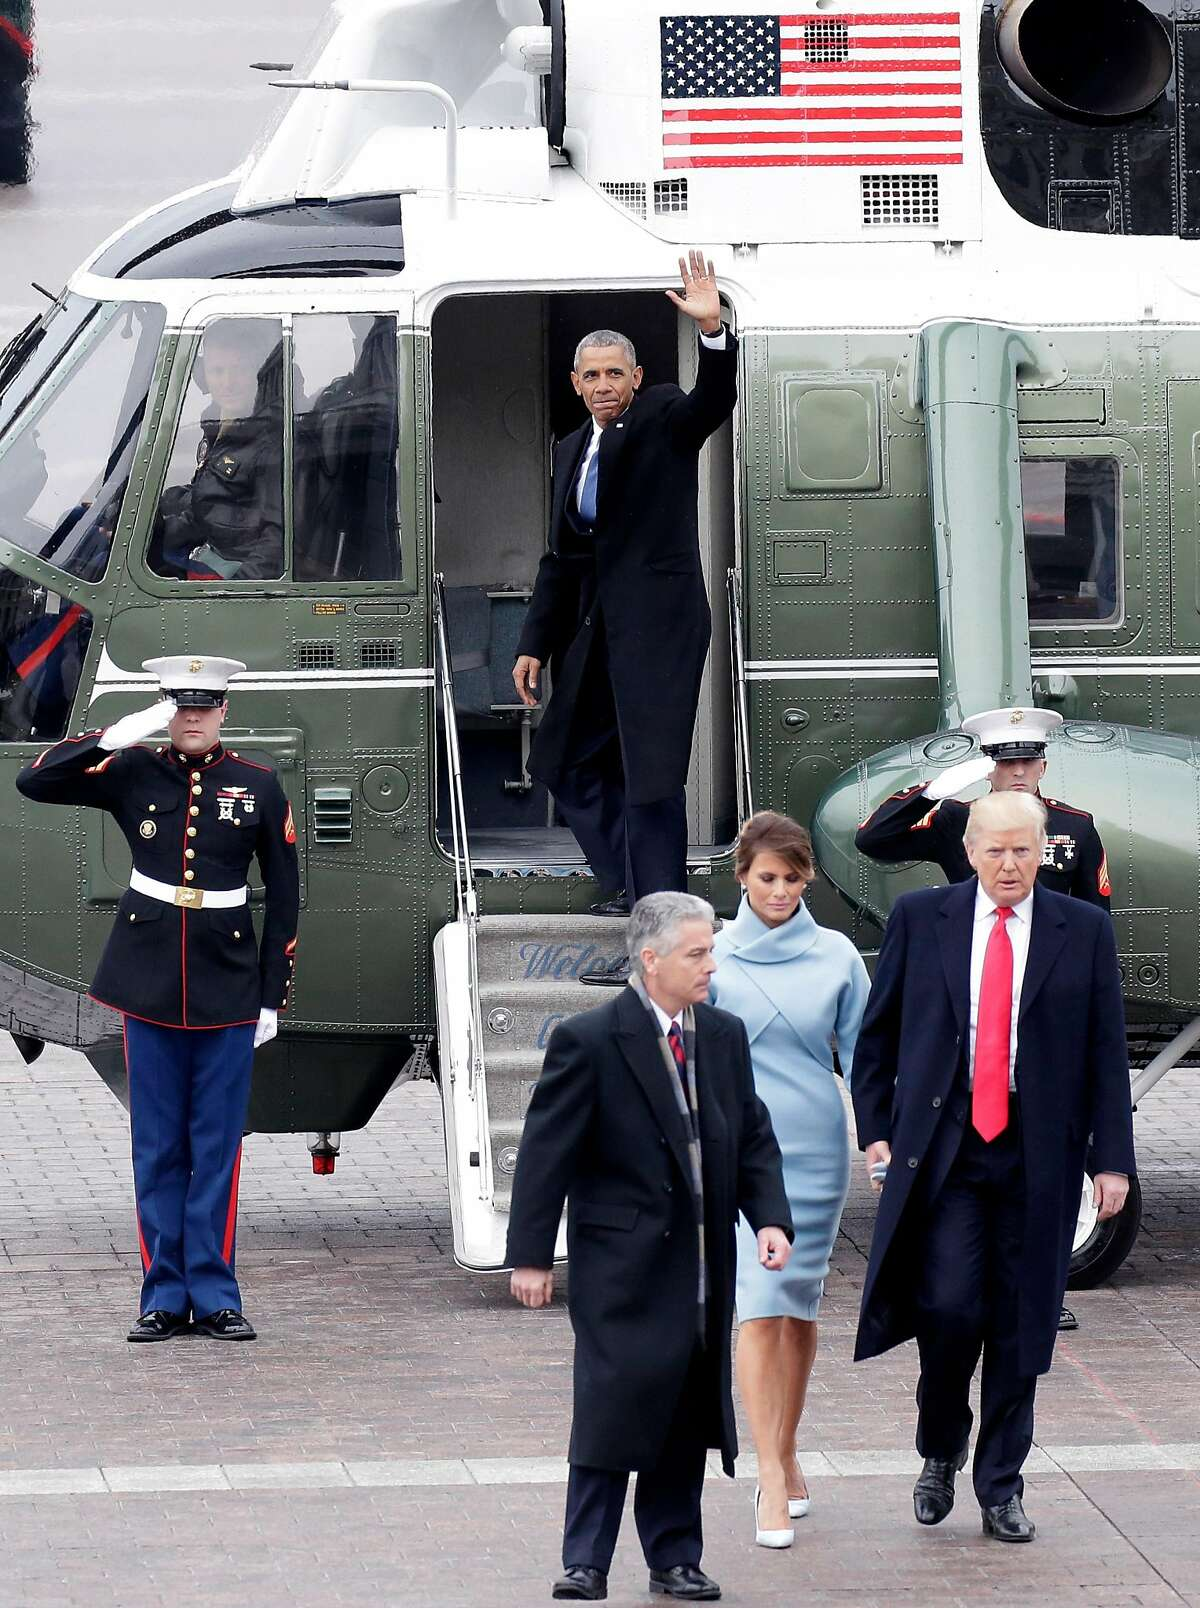 WASHINGTON, DC - JANUARY 20: Former President of the United States Barack Obama waves from a helicopter as newly elected United States President Donald Trump walks with wife Melania Trump back to the Capitol Building after Trump is sworn in at the 58th